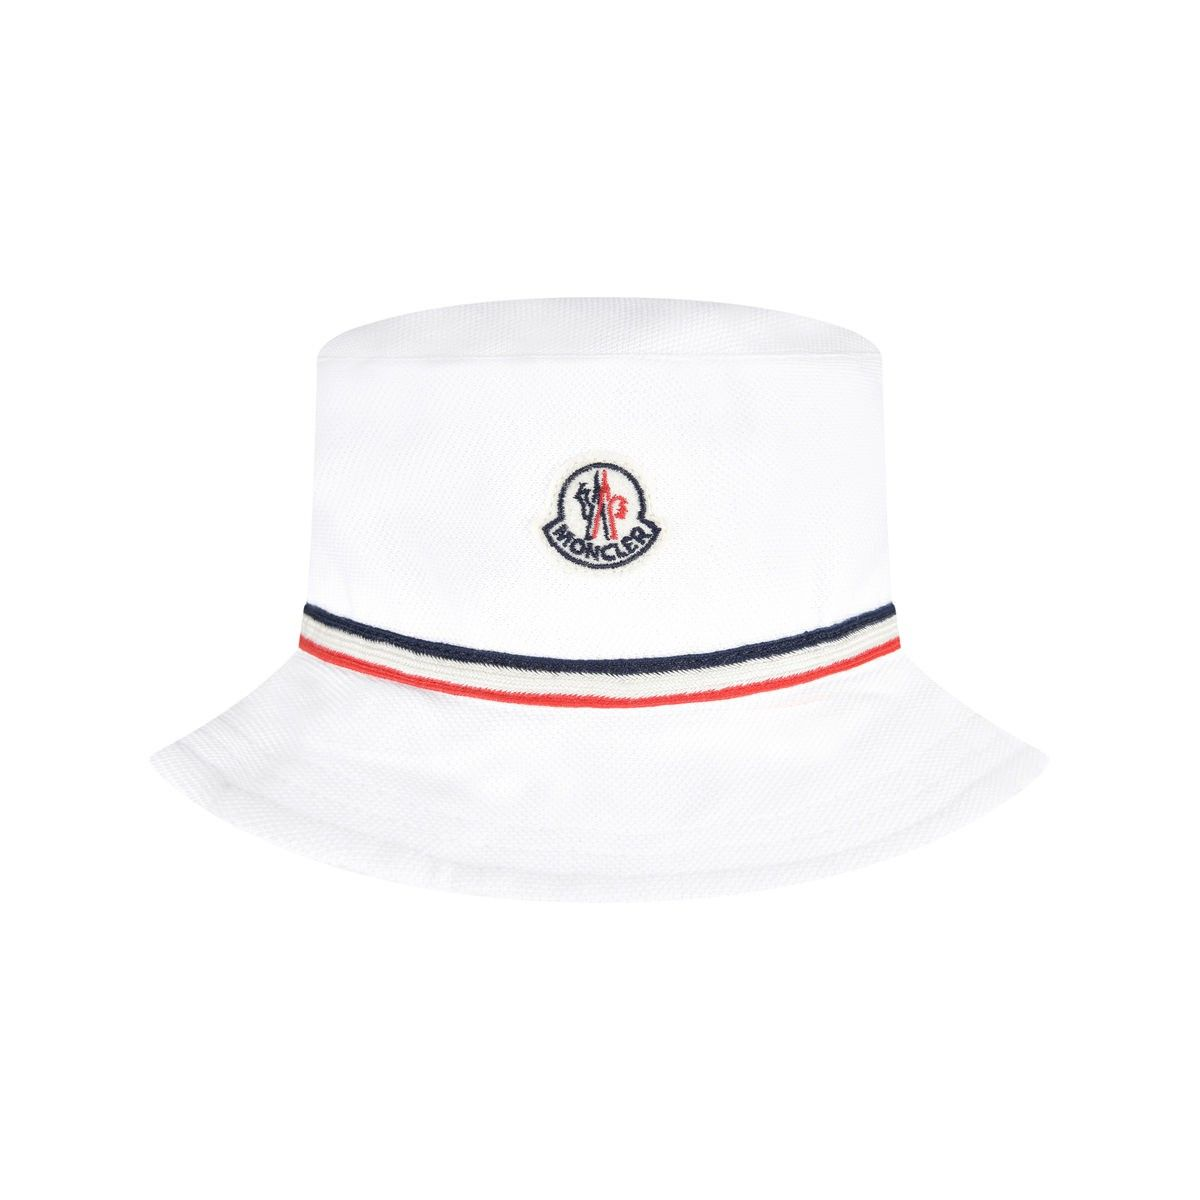 e8e72627d Moncler Baby Boys White Cotton Pique Hat | For babies | Moncler ...